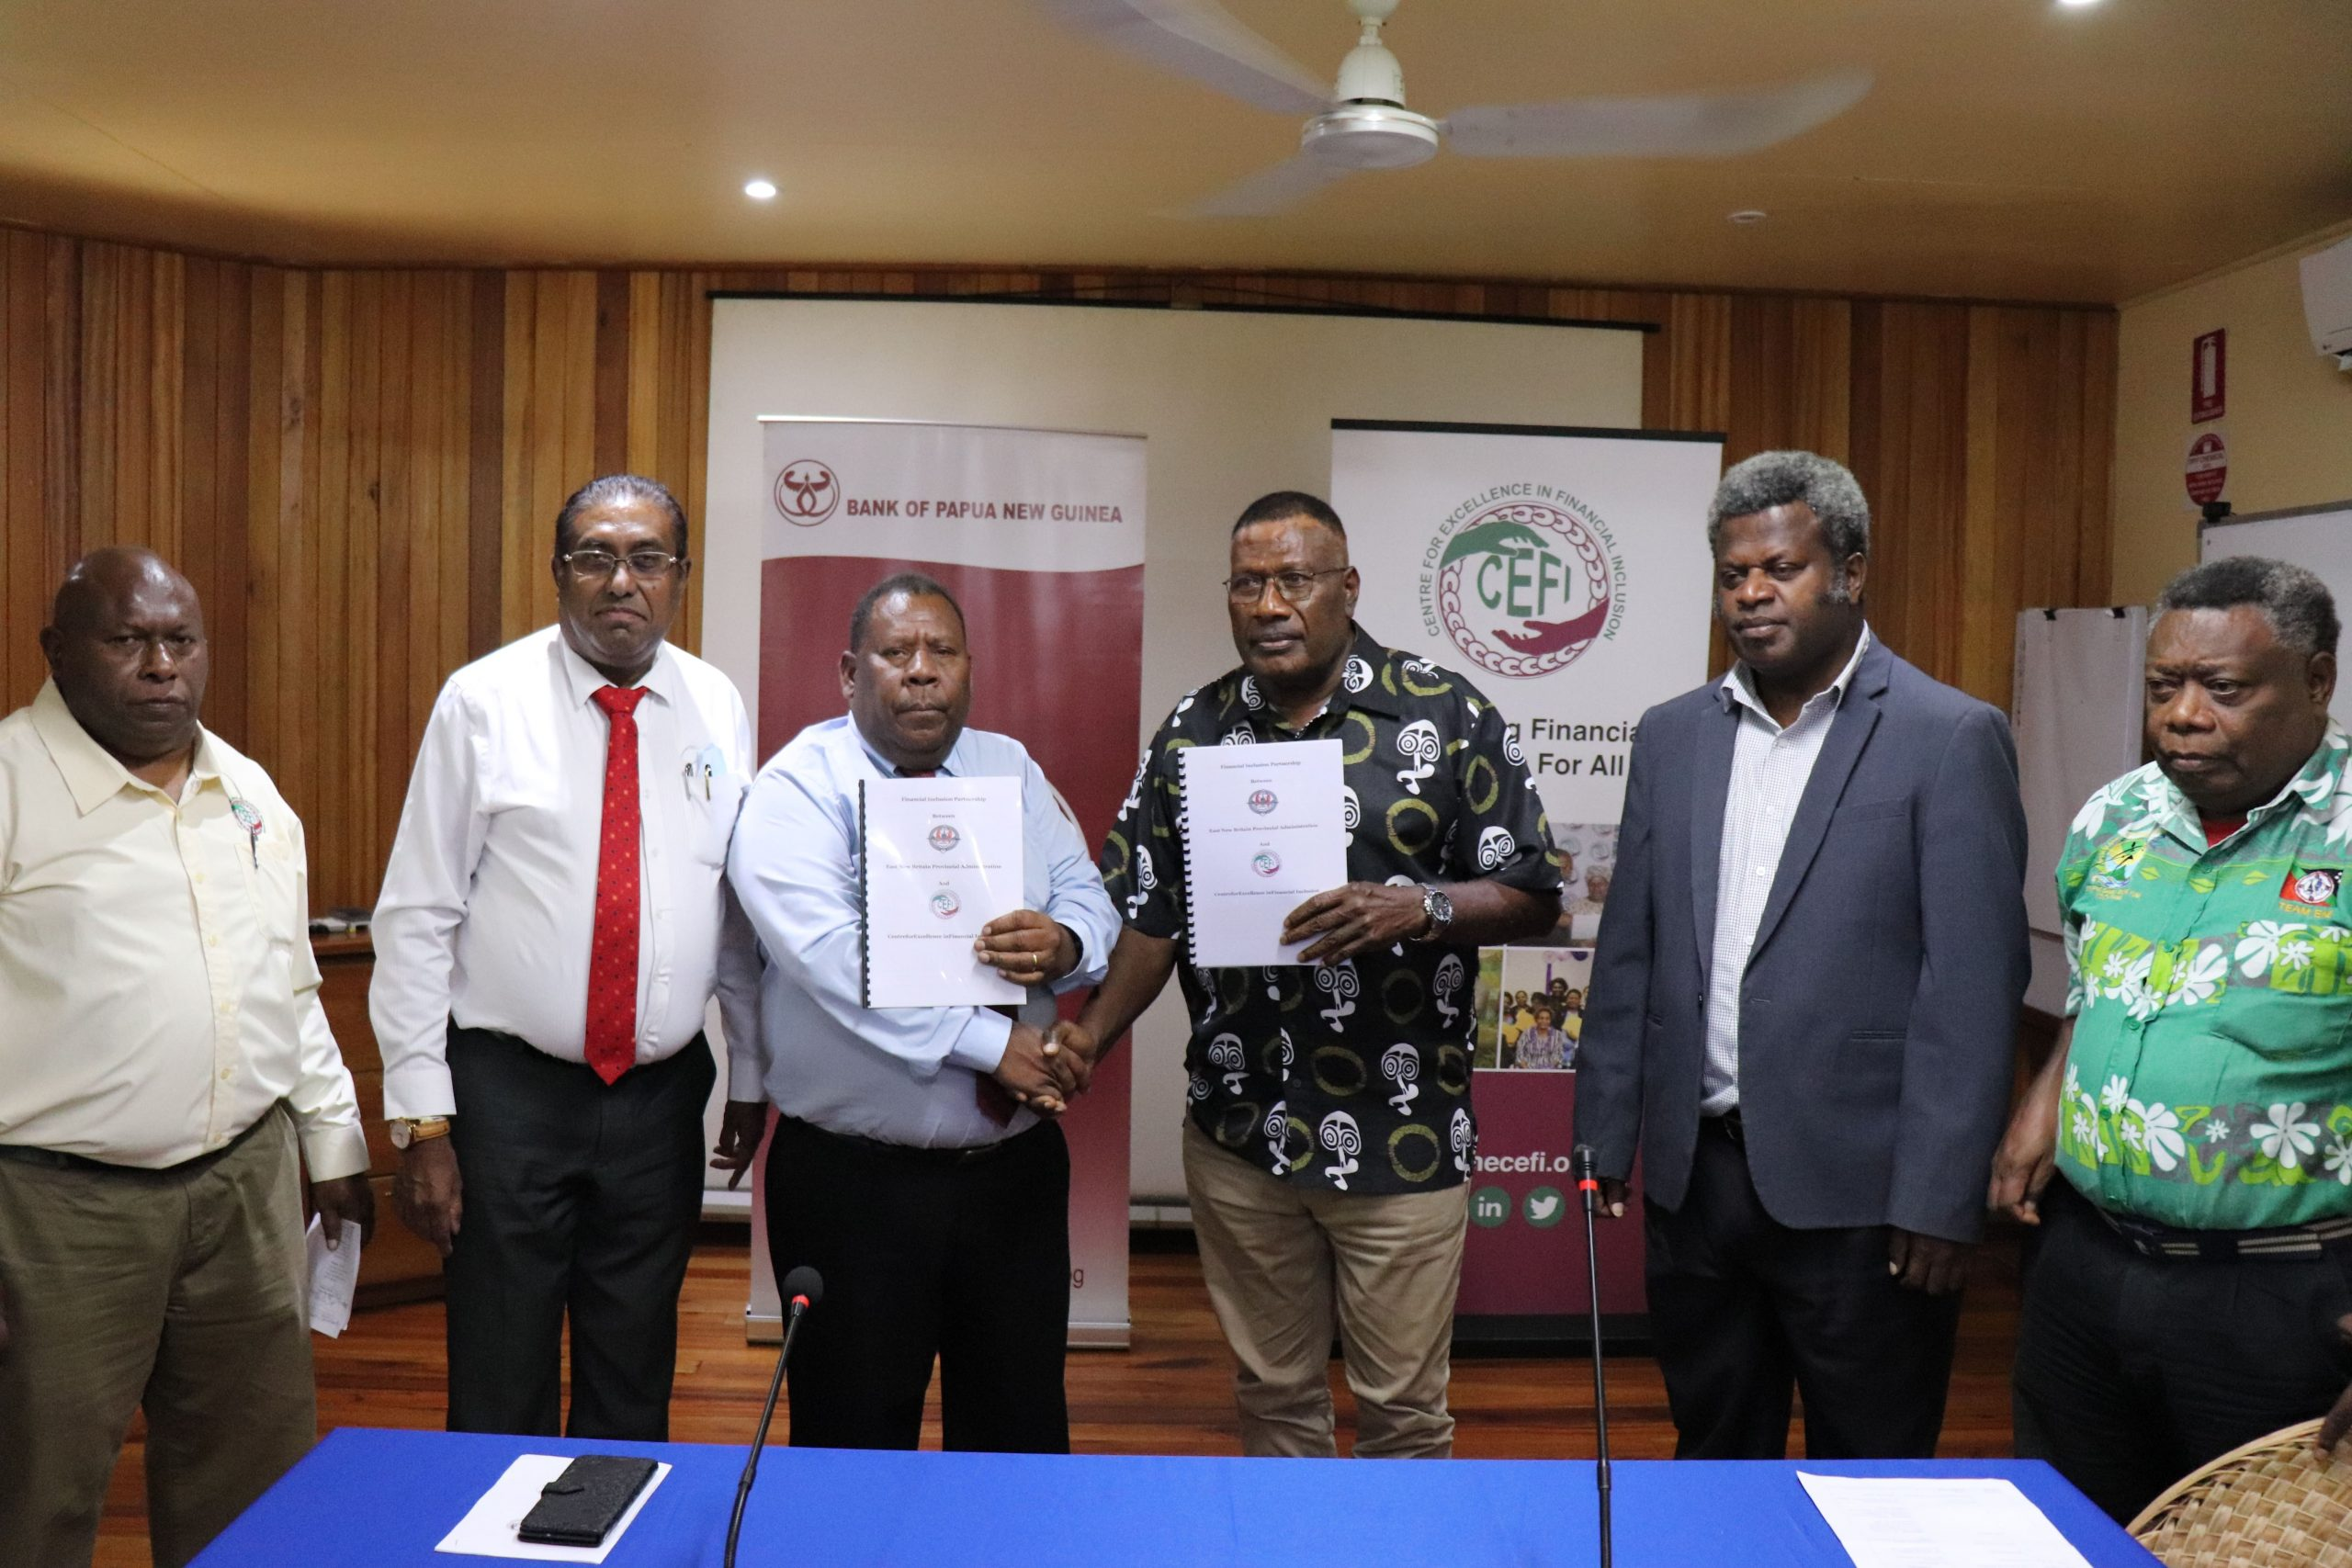 Assistant Governor, Financial System Stability Group, Bank of PNG – Ellison Pidik (3rd from left) and East New Britain Governor Nakikus Konga (3rd from left) shake hands to confirm financial inclusion partnership between CEFI and East New Britain Province.